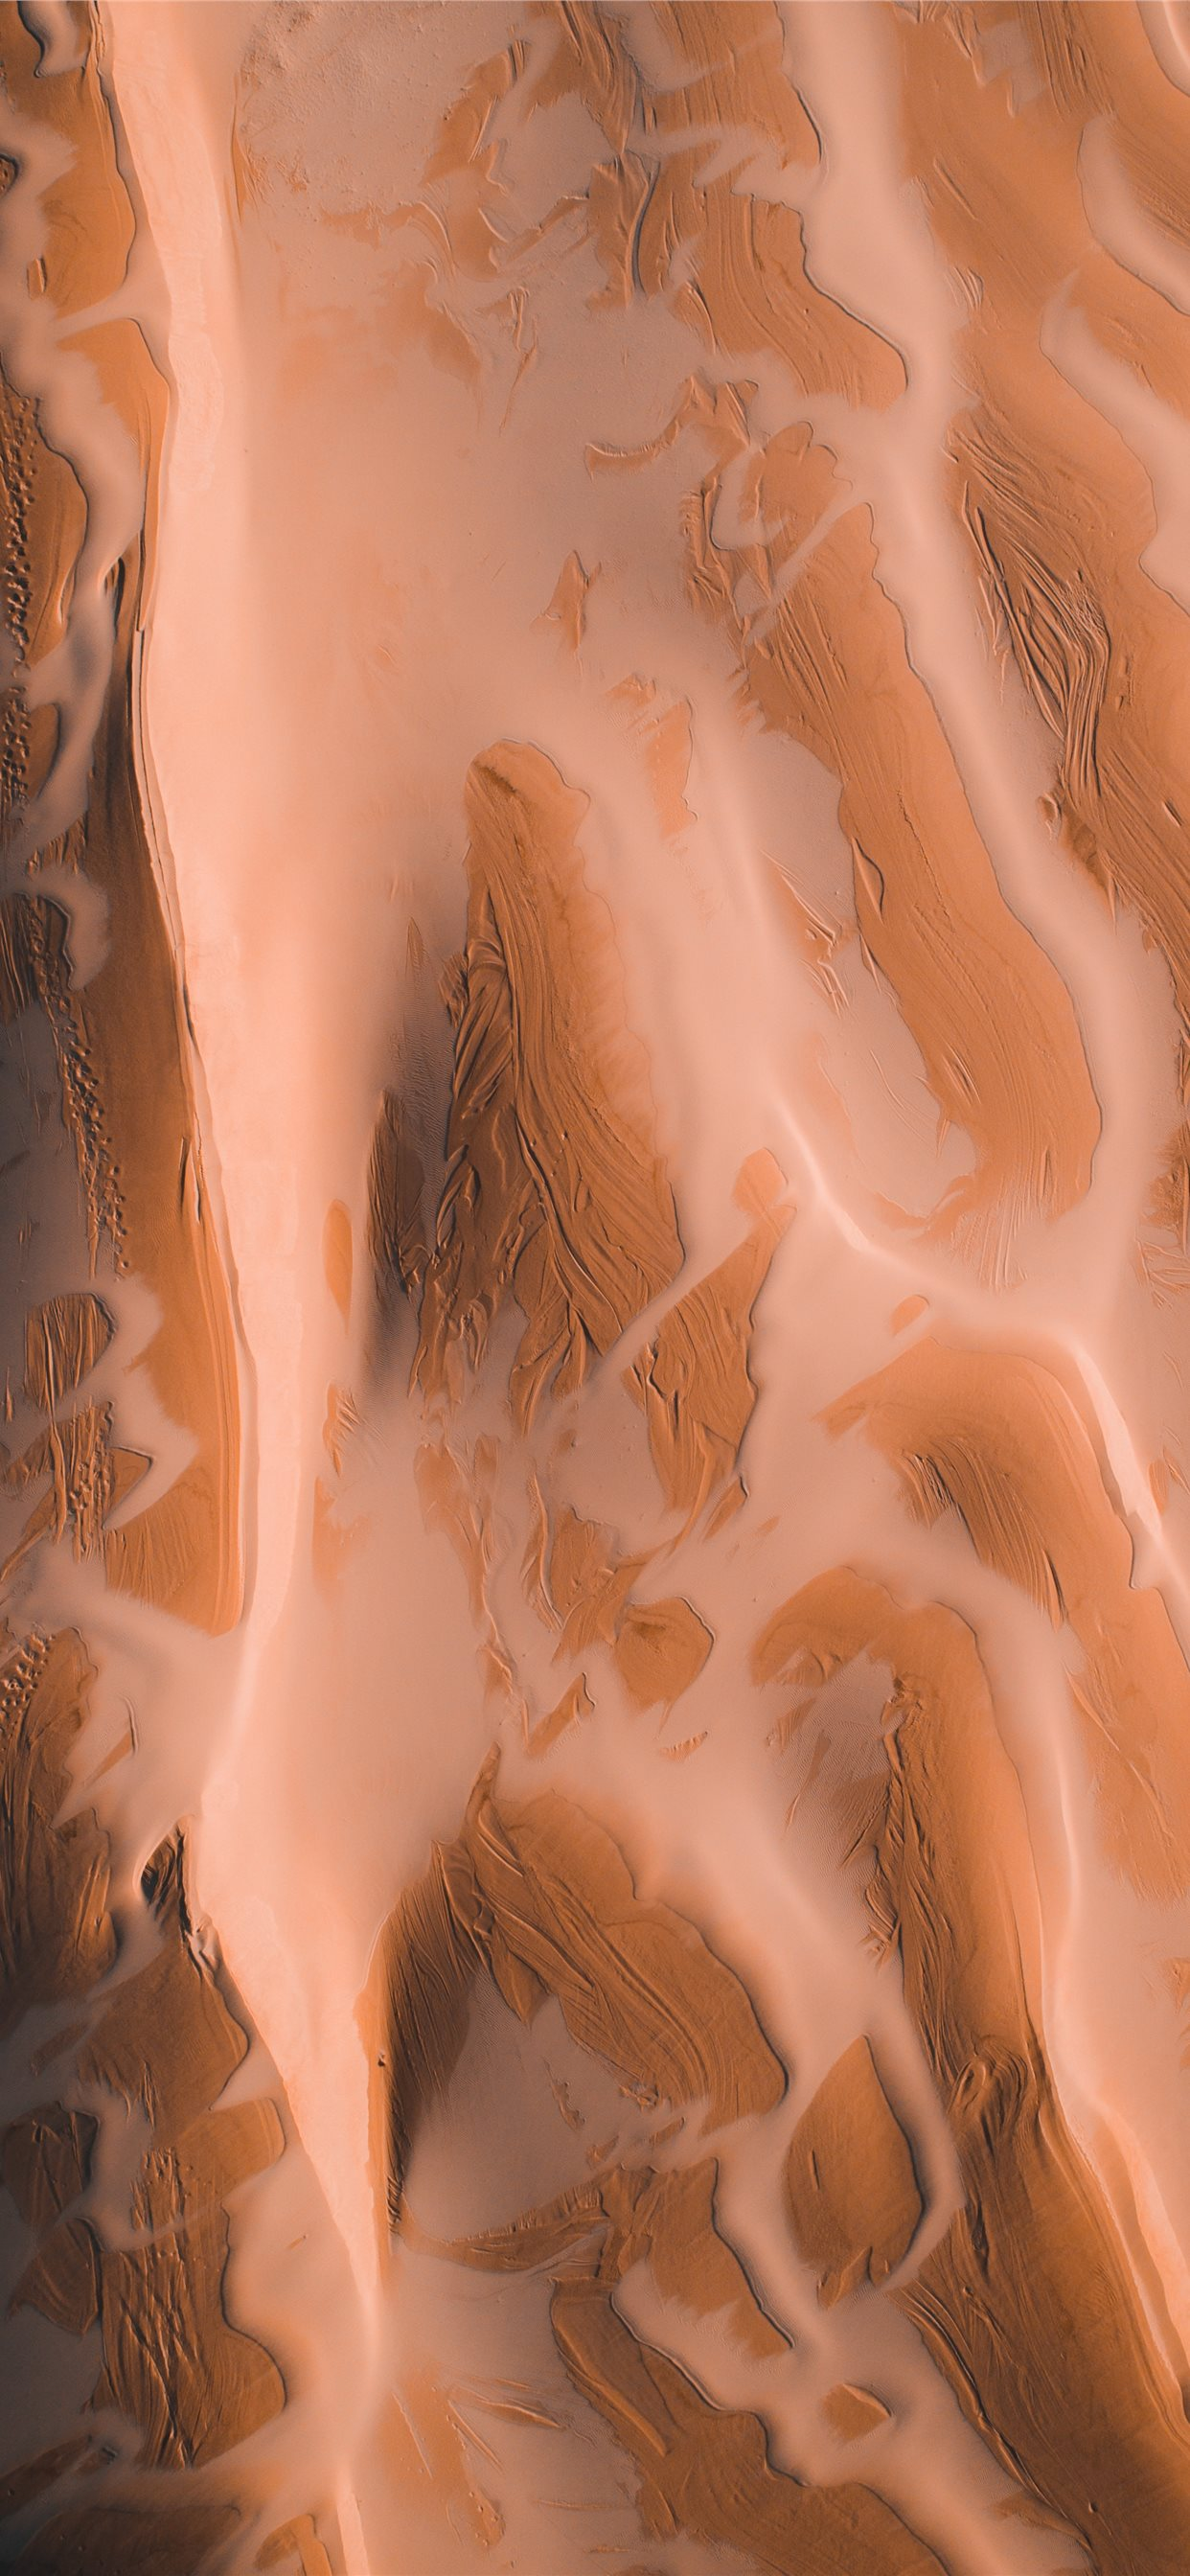 Mars Iphone X Wallpapers Free Download